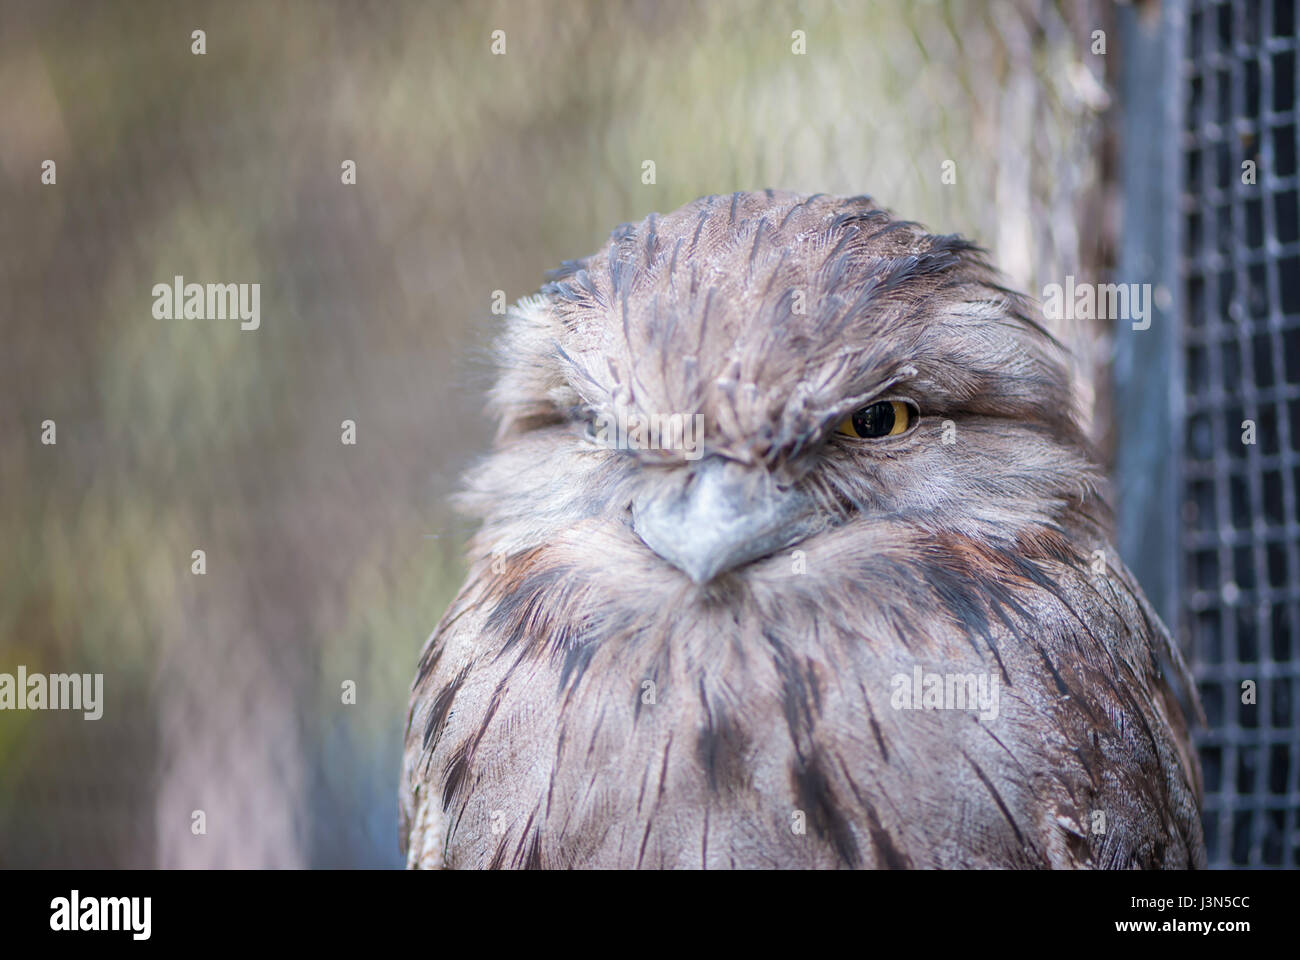 Closeup of the Australian tawny frogmouth, showing the head and the upper torso. Positioned to the right there is - Stock Image